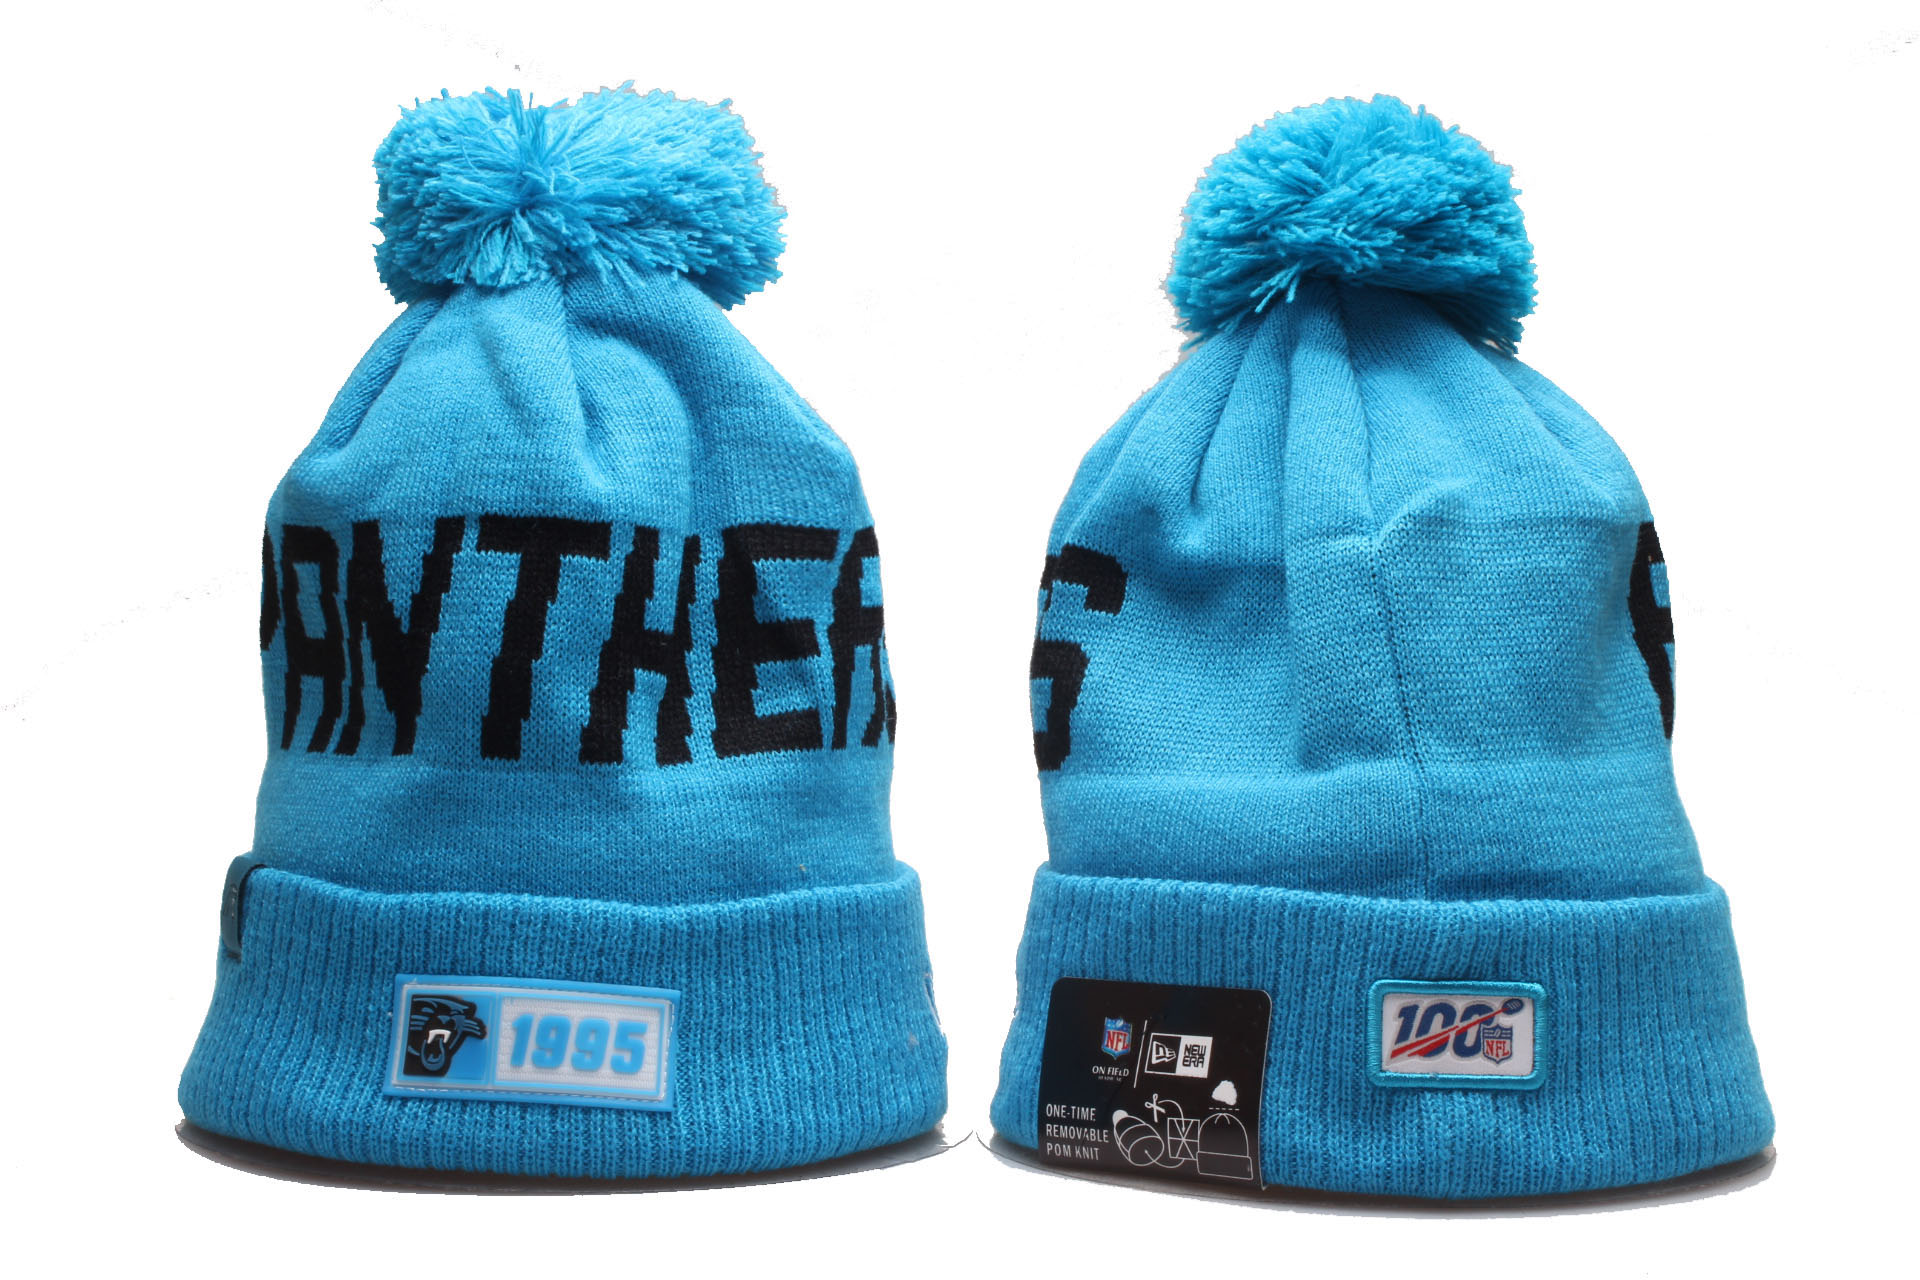 Panthers Team Logo Blue 100th Season Cuffed Pom Knit Hat YP